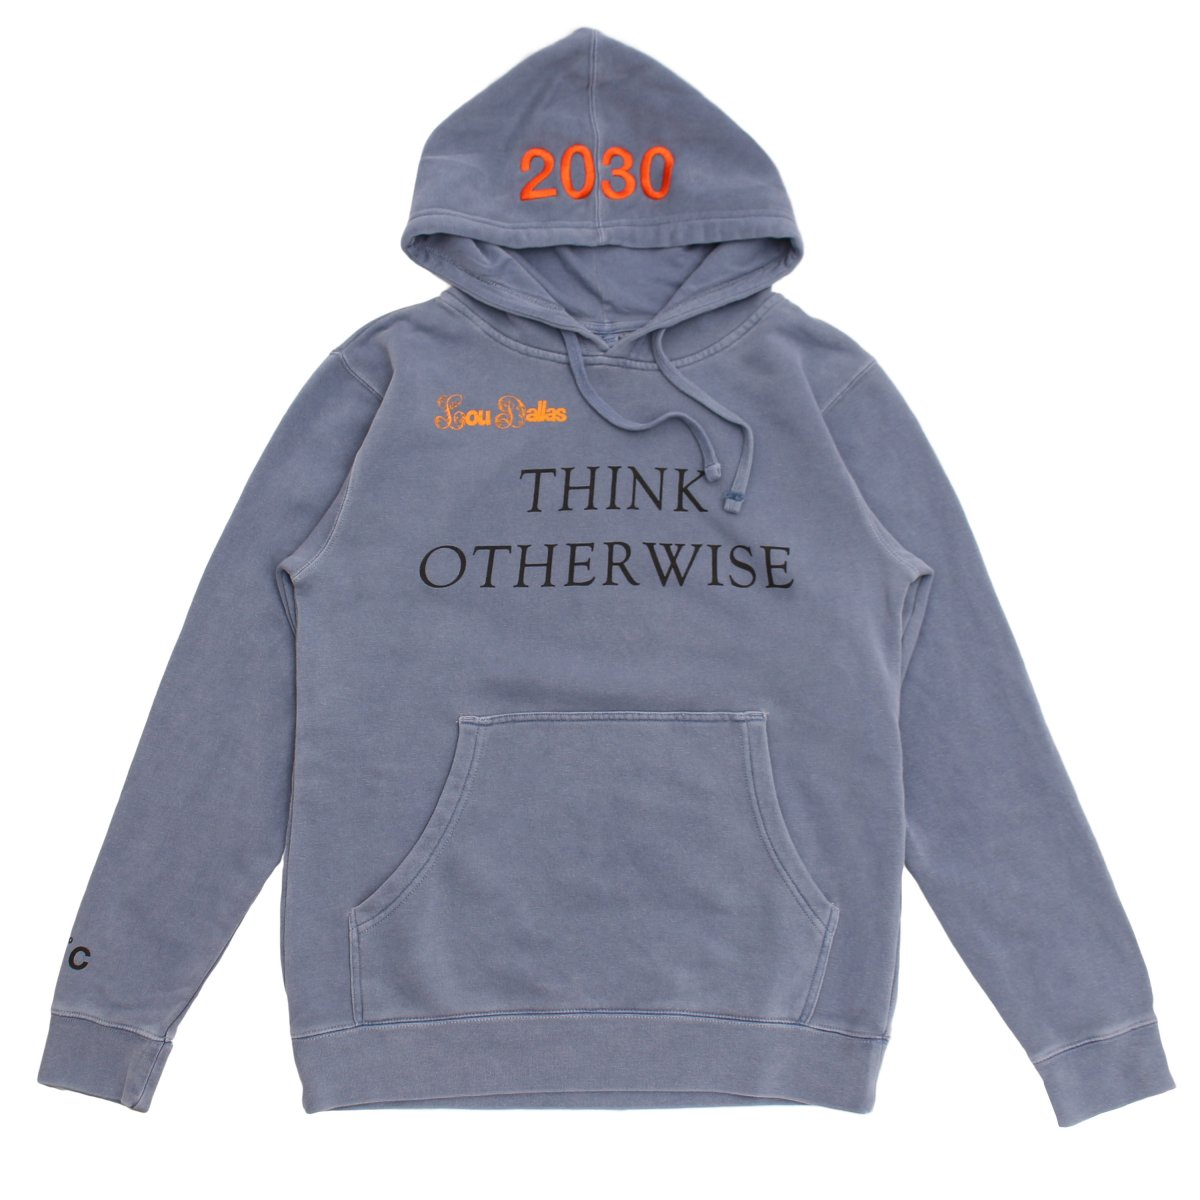 THINK OTHERWISE HOODIE(Strong Woman Better Planet)